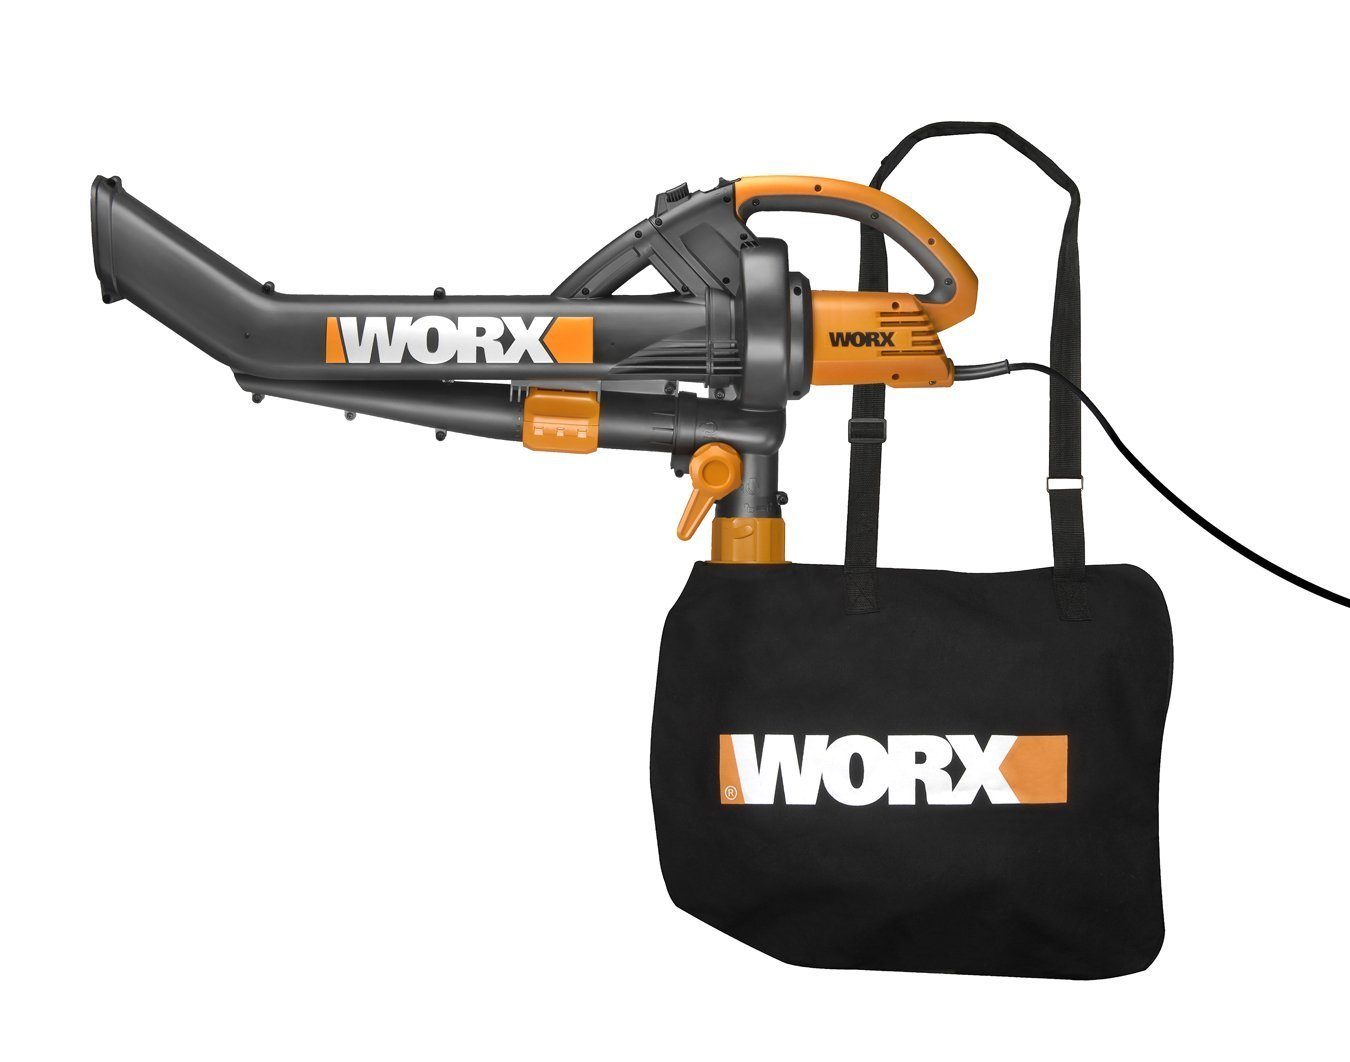 WORX TriVac WG500 12 amp All-in-One Electric Blower/Mulcher/Vacuum at Sears.com